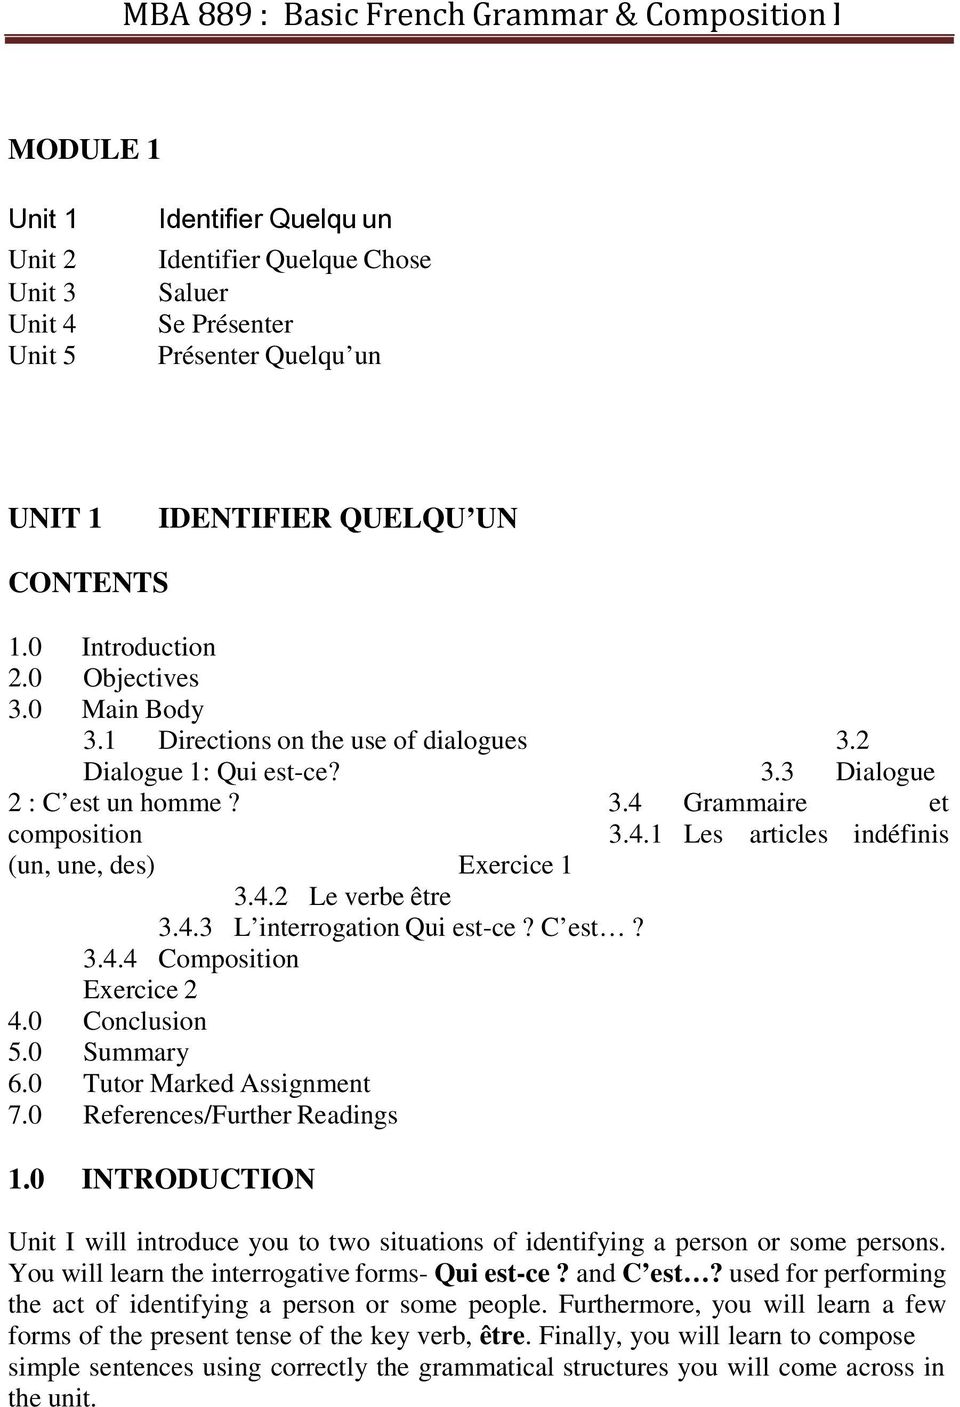 4.2 Le verbe être 3.4.3 L interrogation Qui est-ce? C est? 3.4.4 Composition Exercice 2 4.0 Conclusion 5.0 Summary 6.0 Tutor Marked Assignment 7.0 References/Further Readings 1.